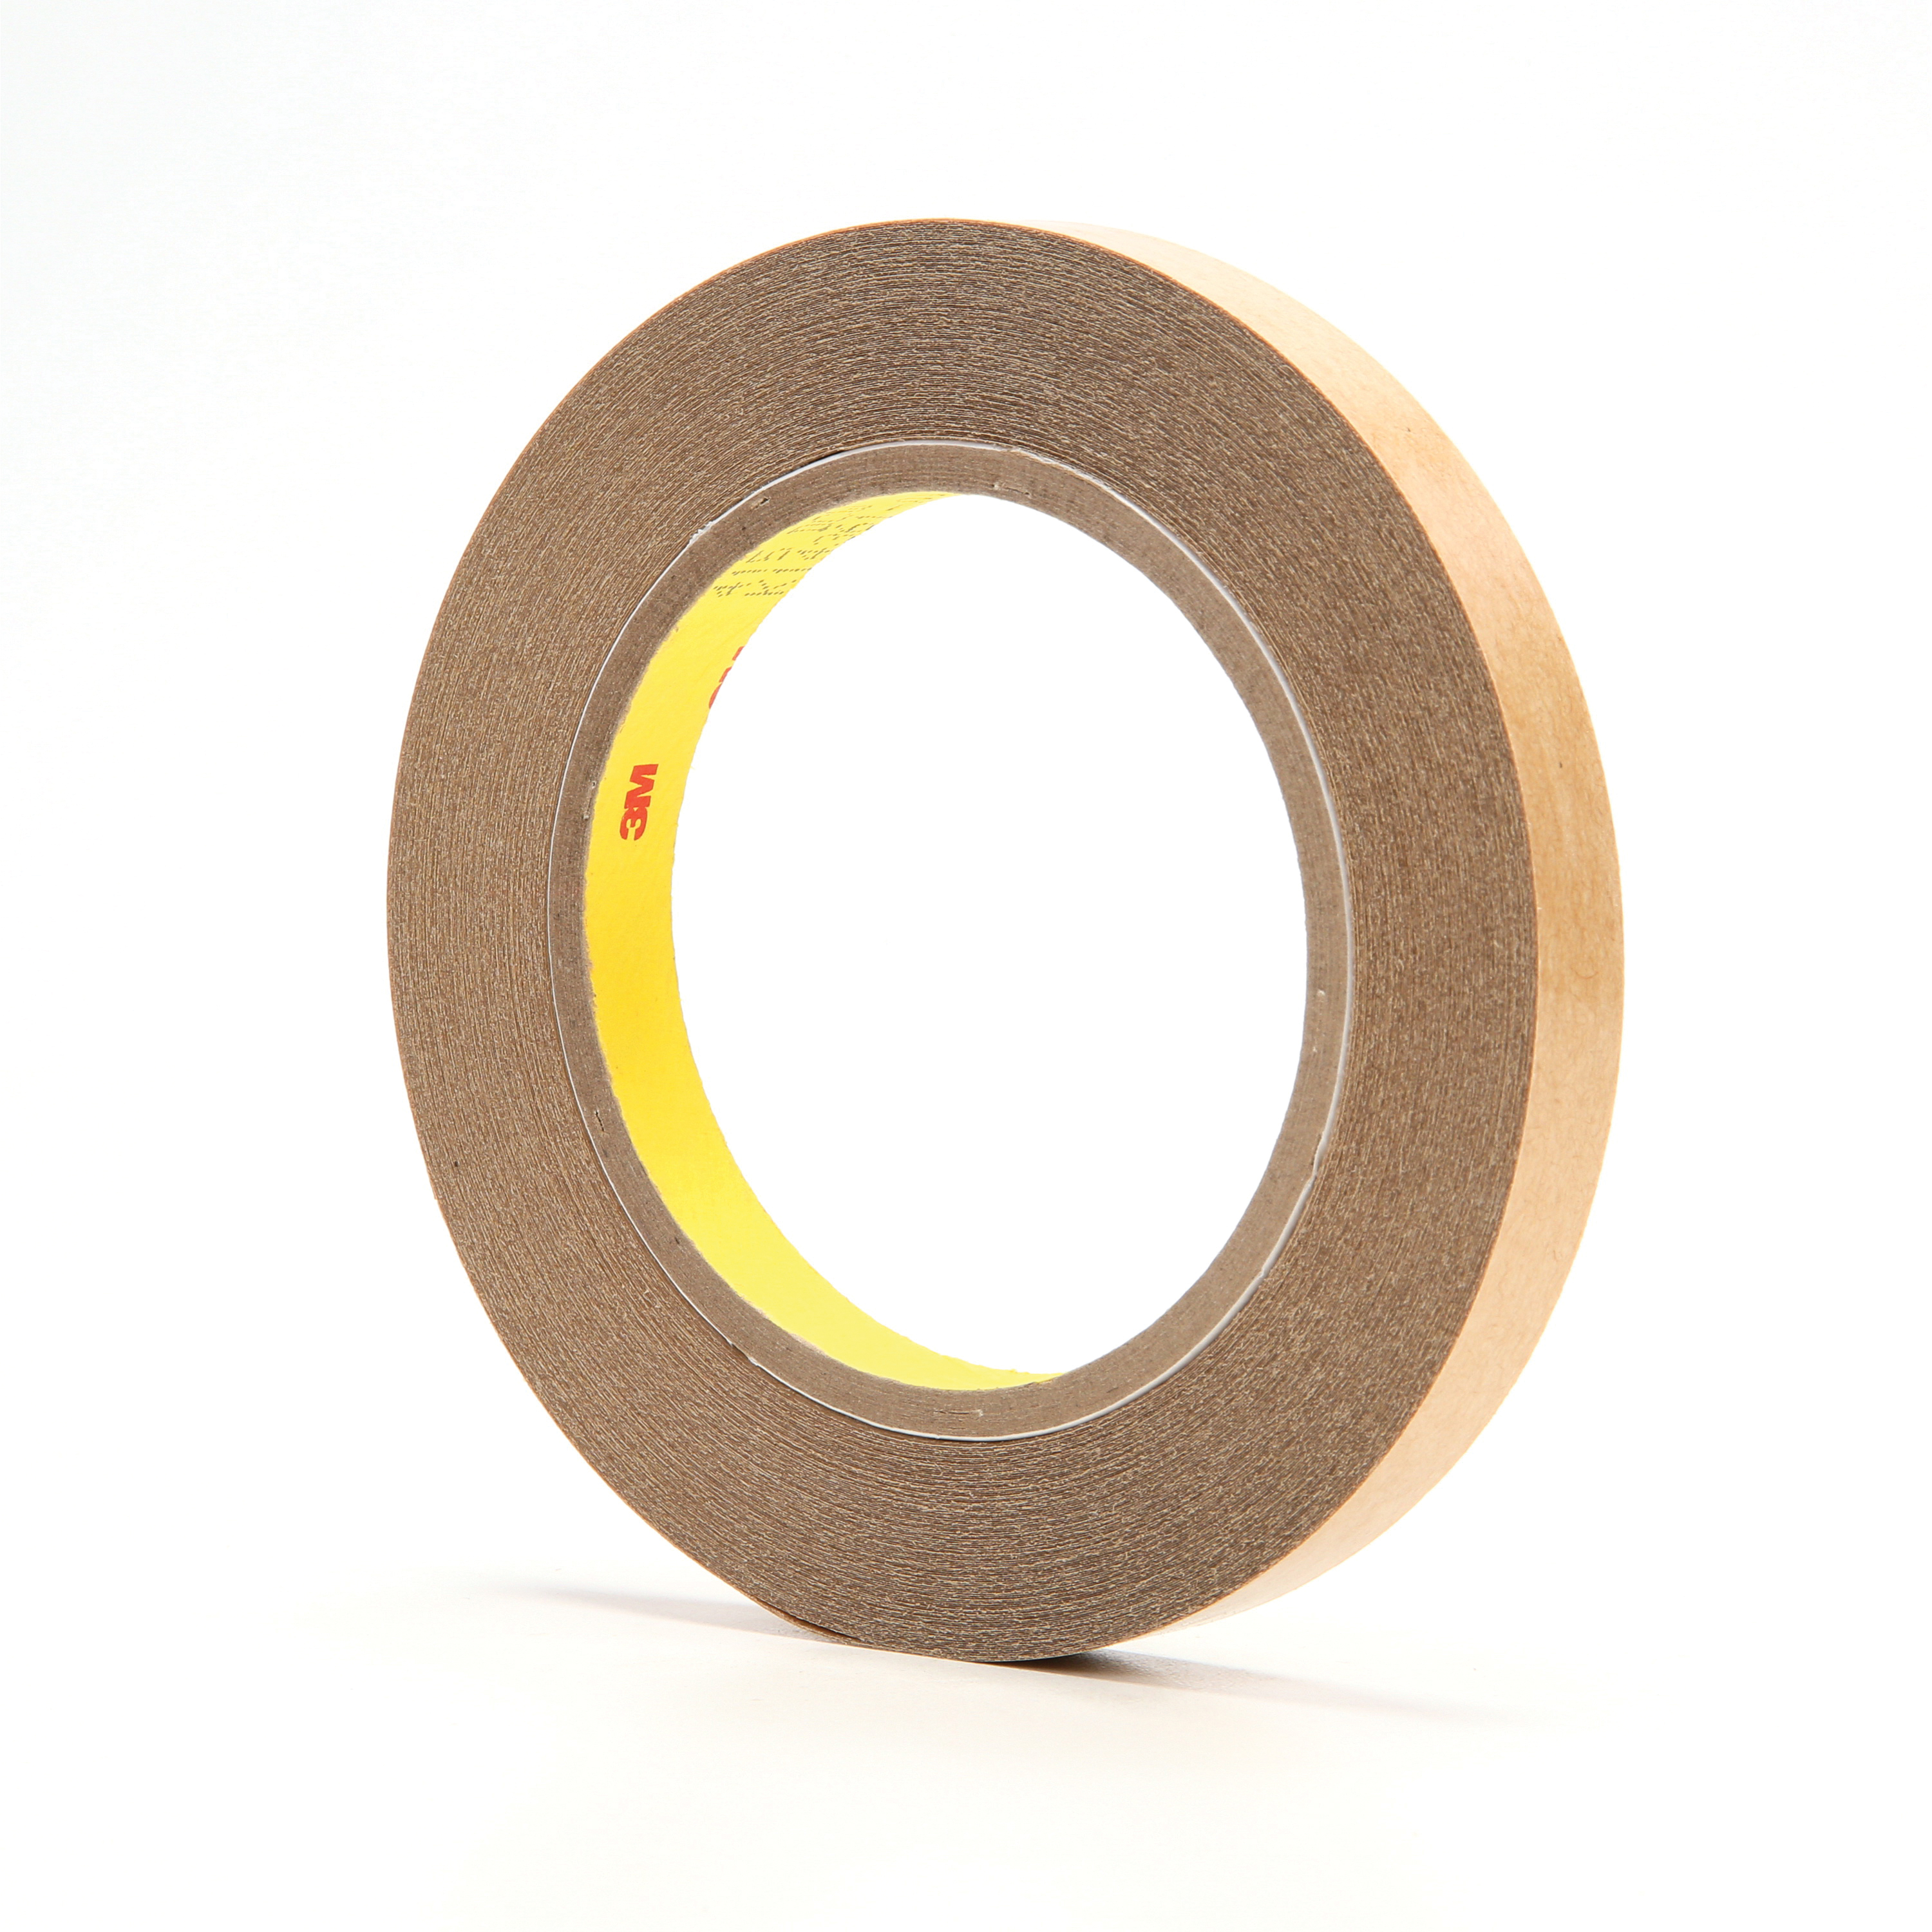 3M™ 021200-03764 415 Double Coated Non-Repulpable Splicing Tape, 1/2 in W x 36 yd Roll L, 4 mil THK, Clear